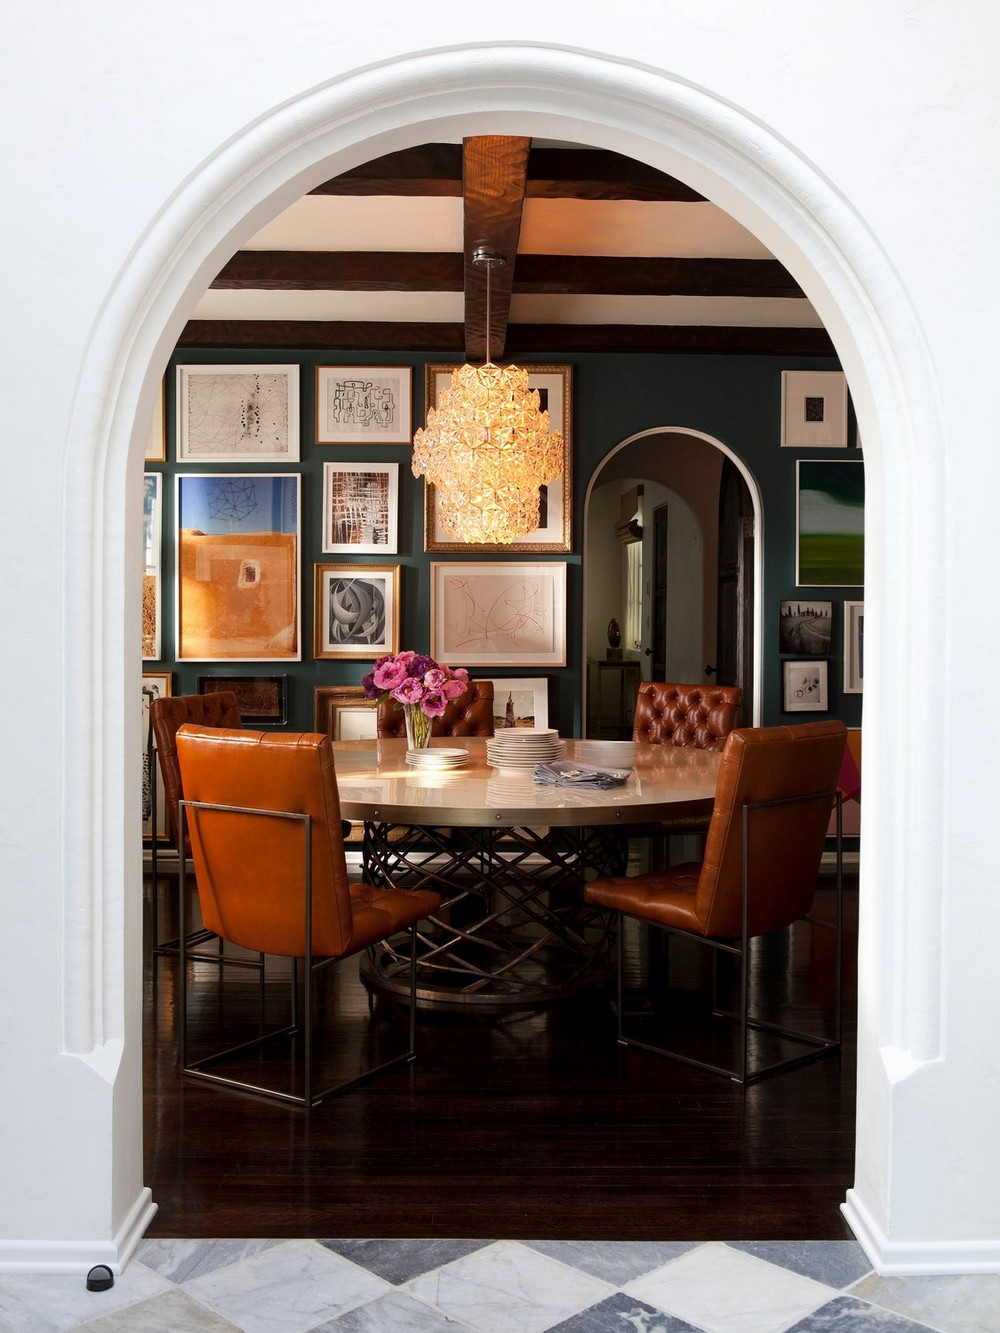 top interior designers Shop The Look: Dining Room Ideas By Top Interior Designers (Part II) nate berkus 1stDibs